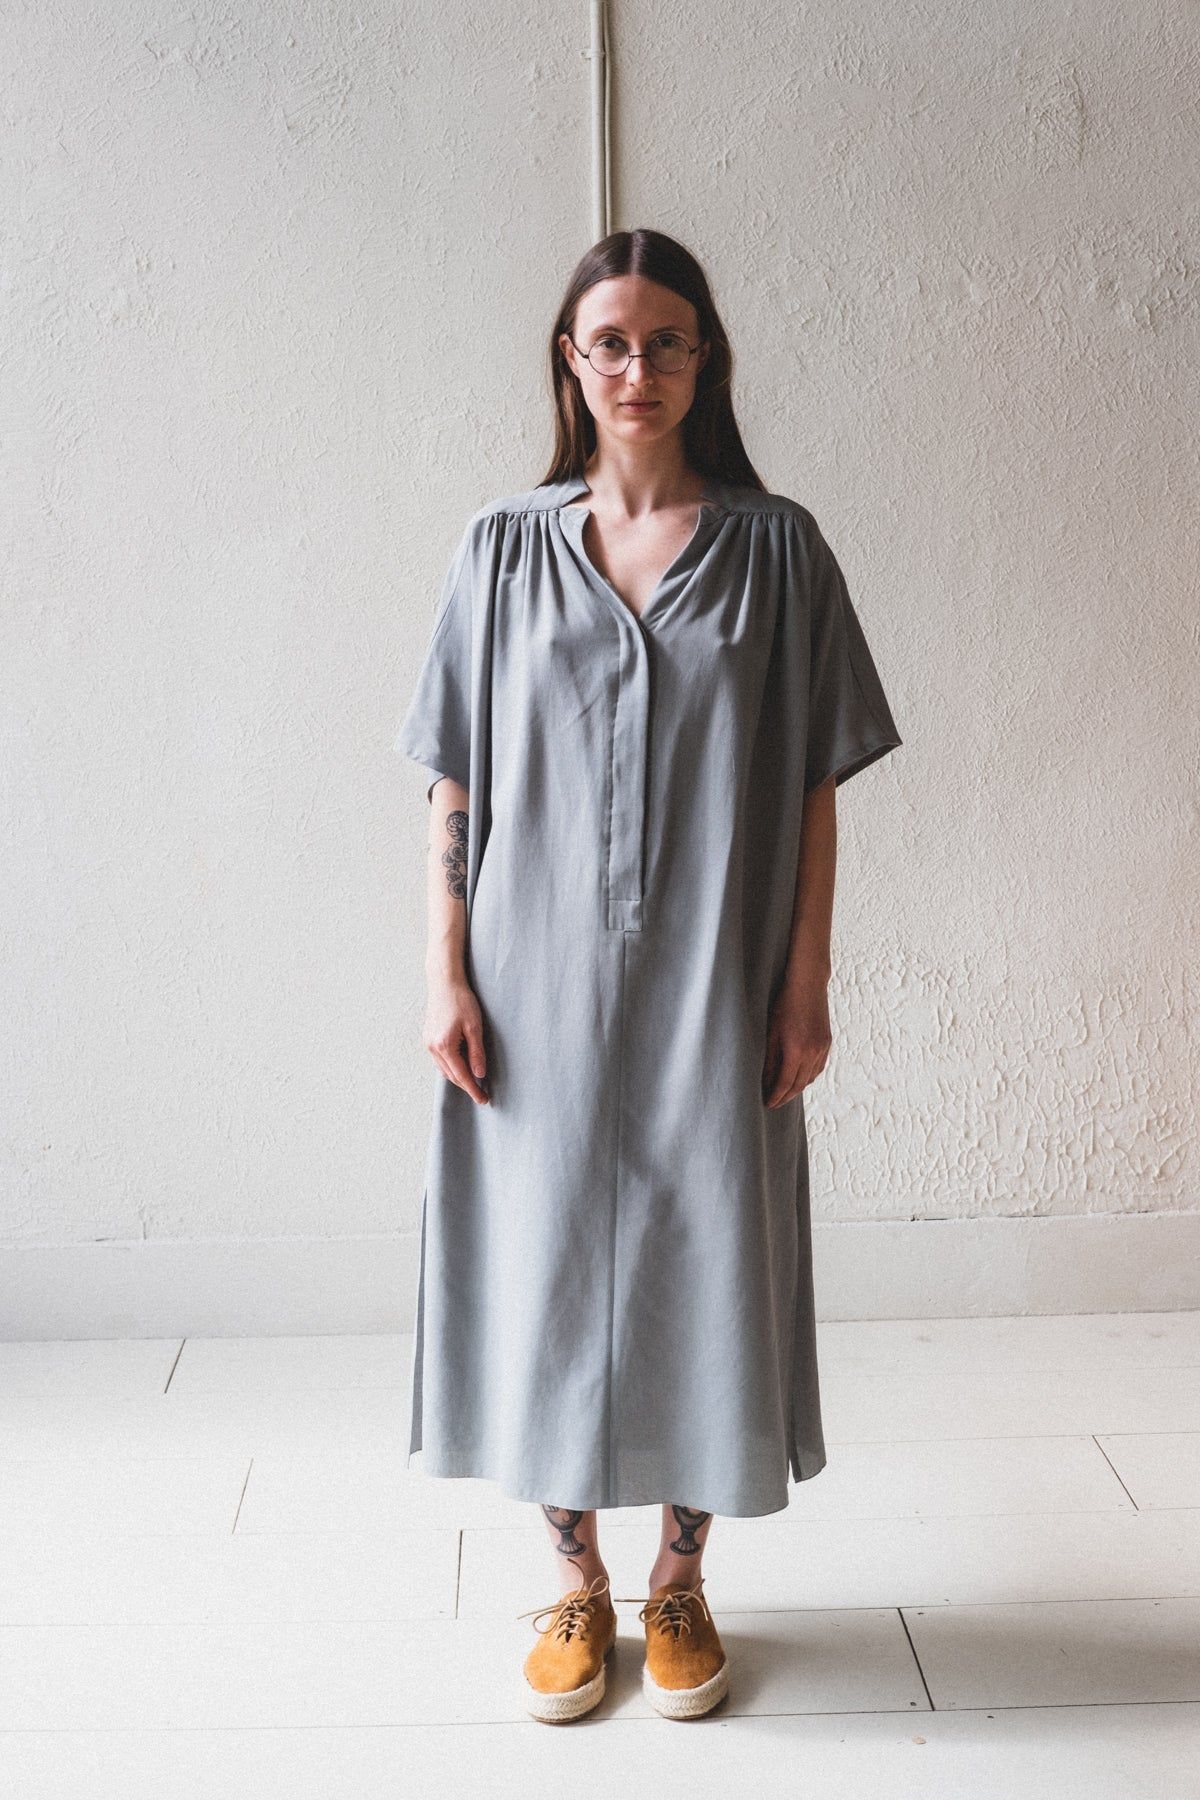 SEYA DRESS IN GREEN GRAY LIGHT COTTON TWILL